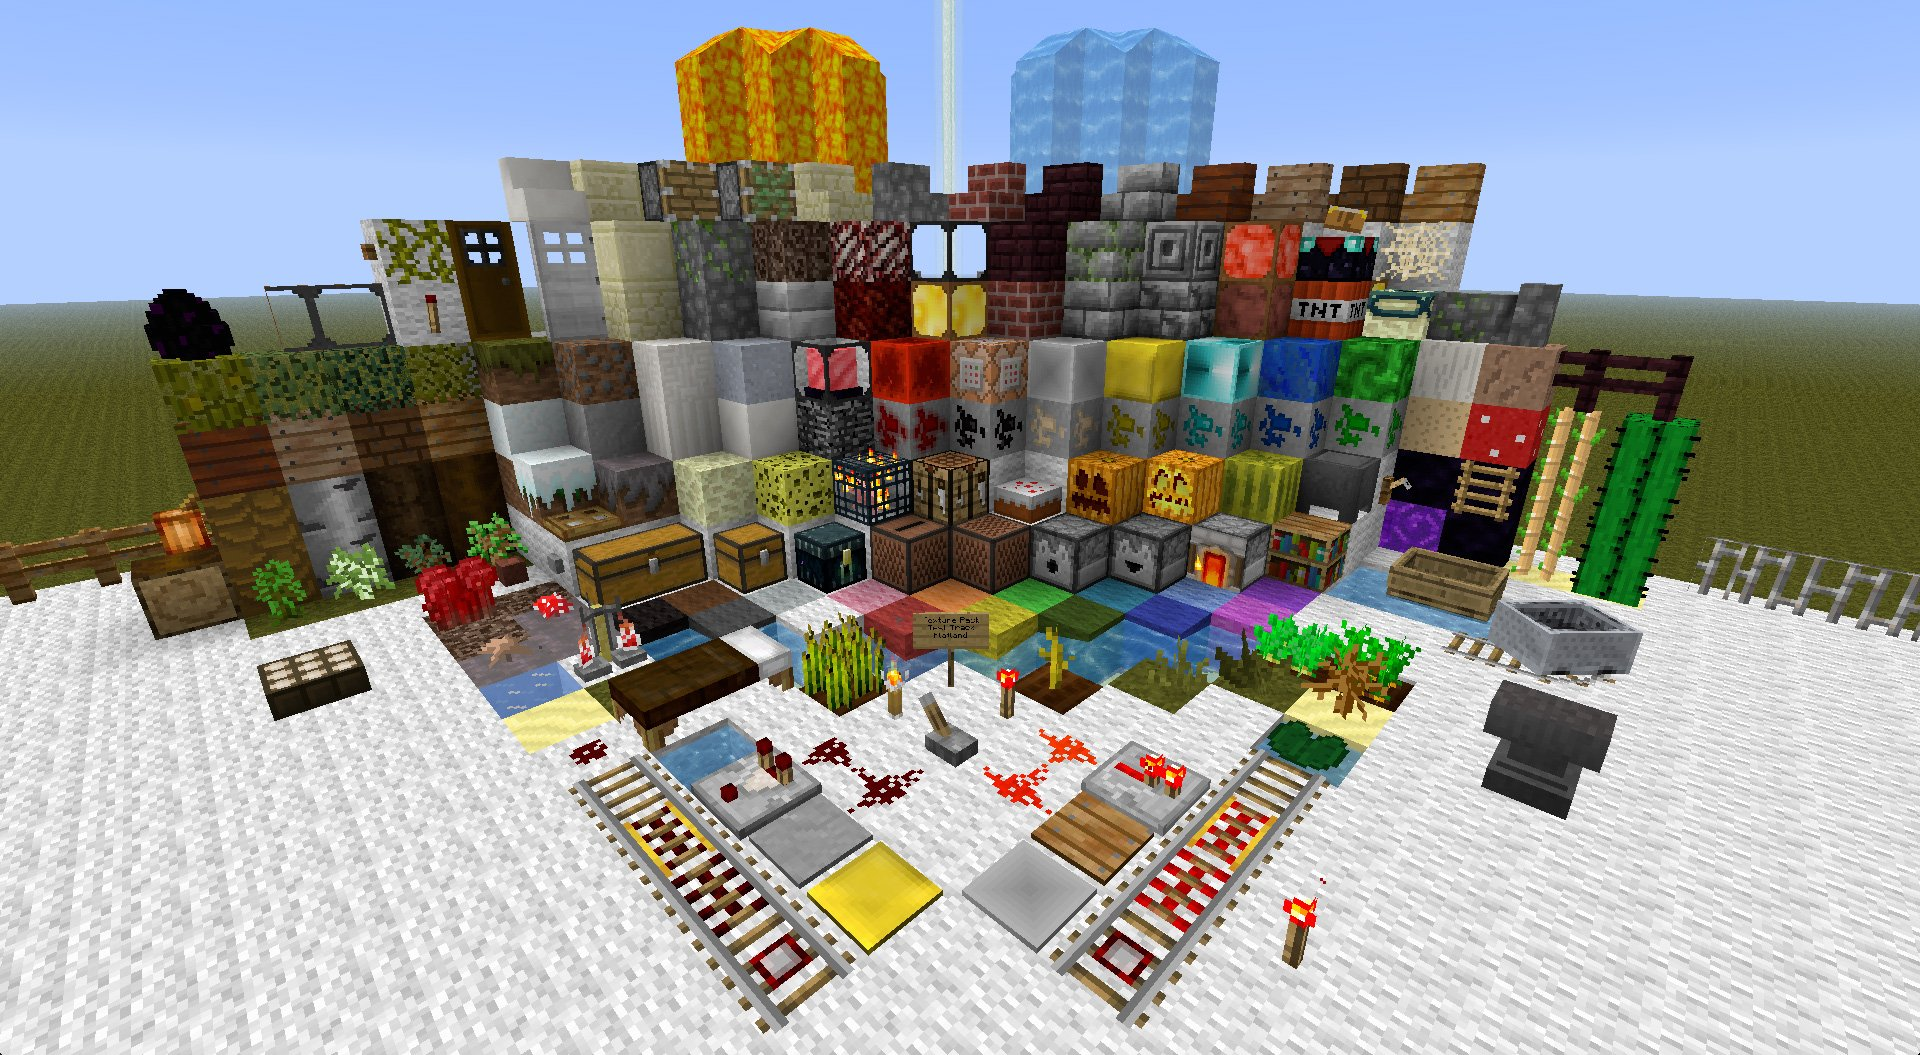 minecraft fni realistic rpg texture pack 1.4.7